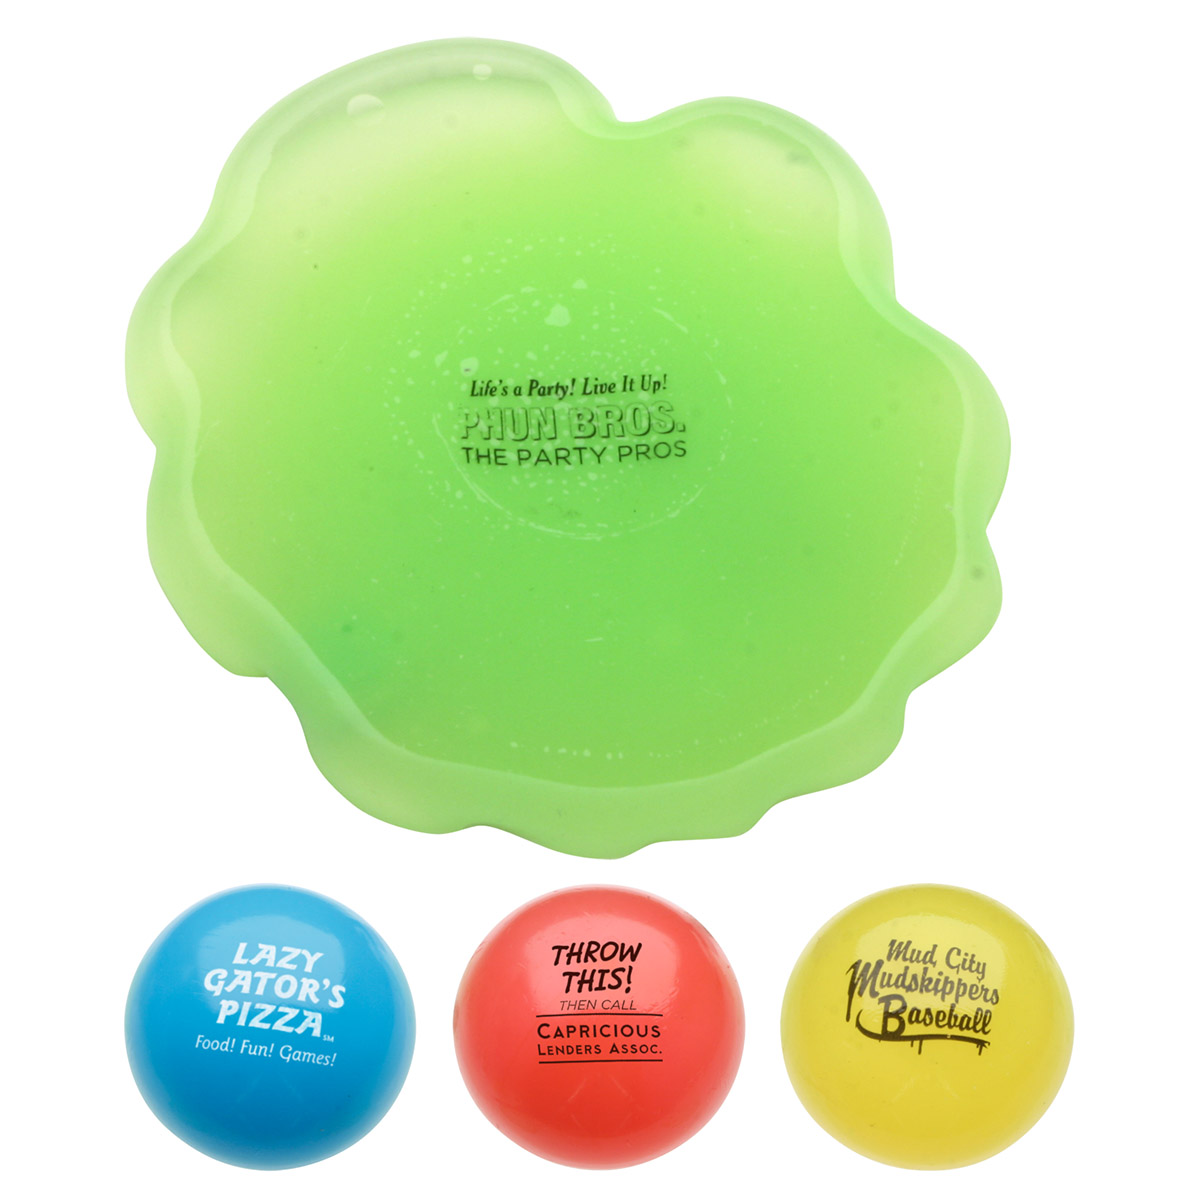 Toss N' Splat Amoeba Ball, LGB-AB09, 1 Colour Imprint